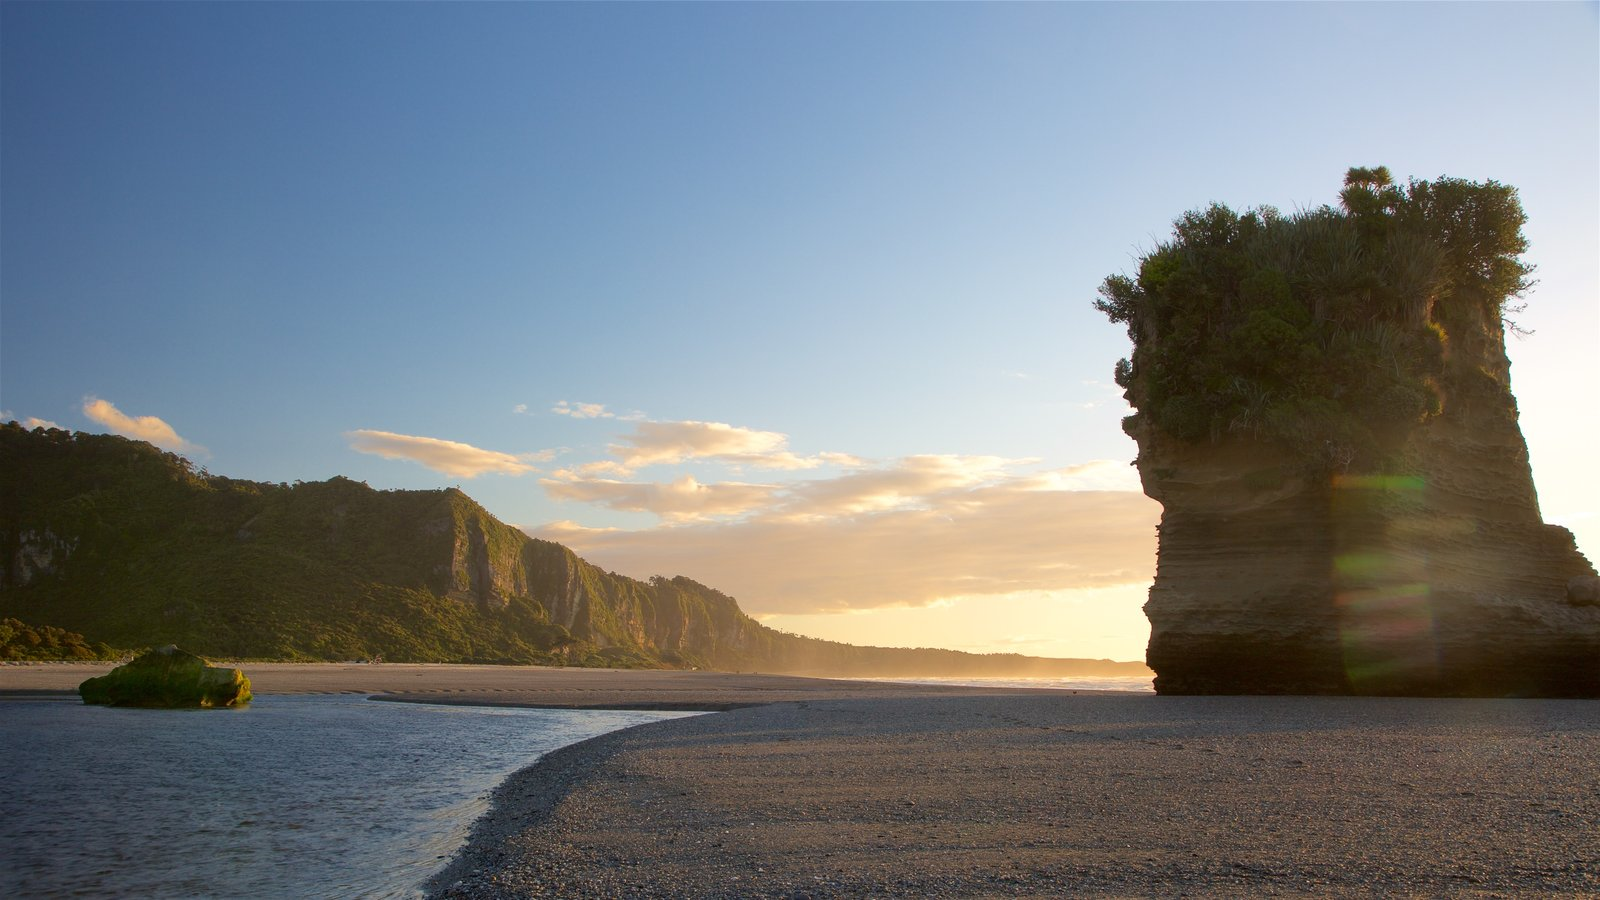 Sunset & Sunrise Pictures: View Images of Punakaiki